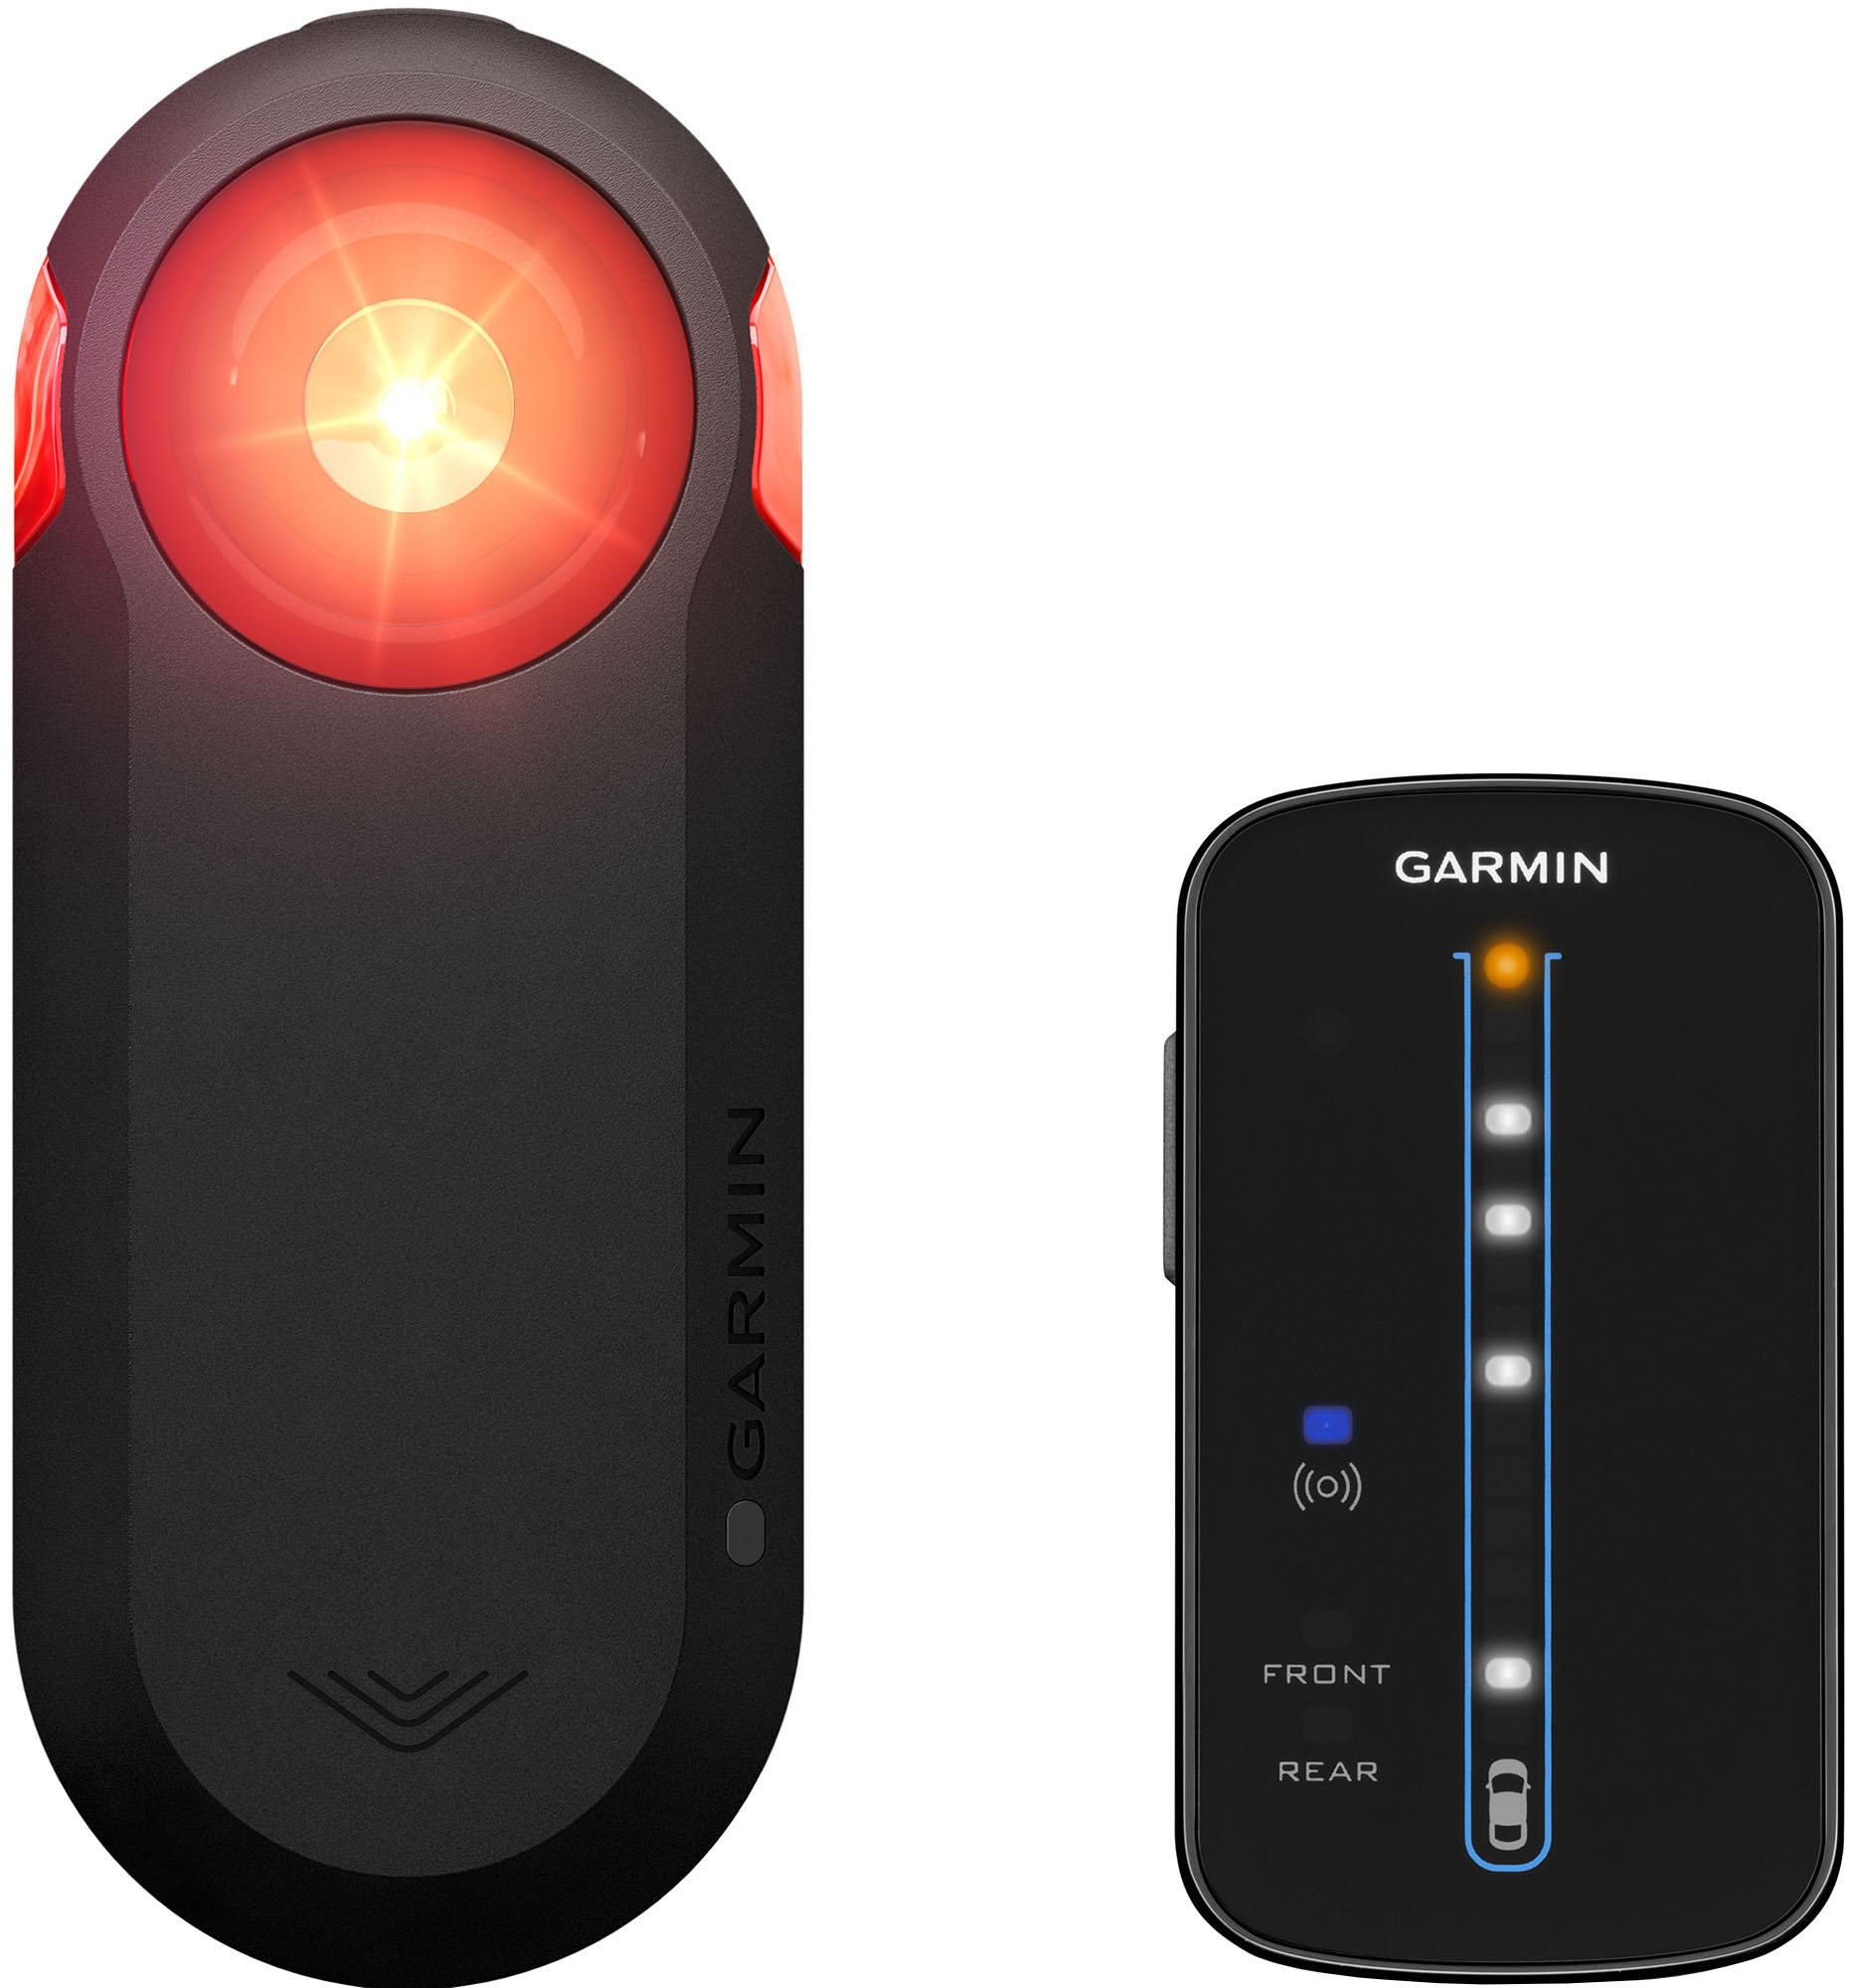 Garmin Varia 2 Radar Tail Light and Head Unit | Rear lights